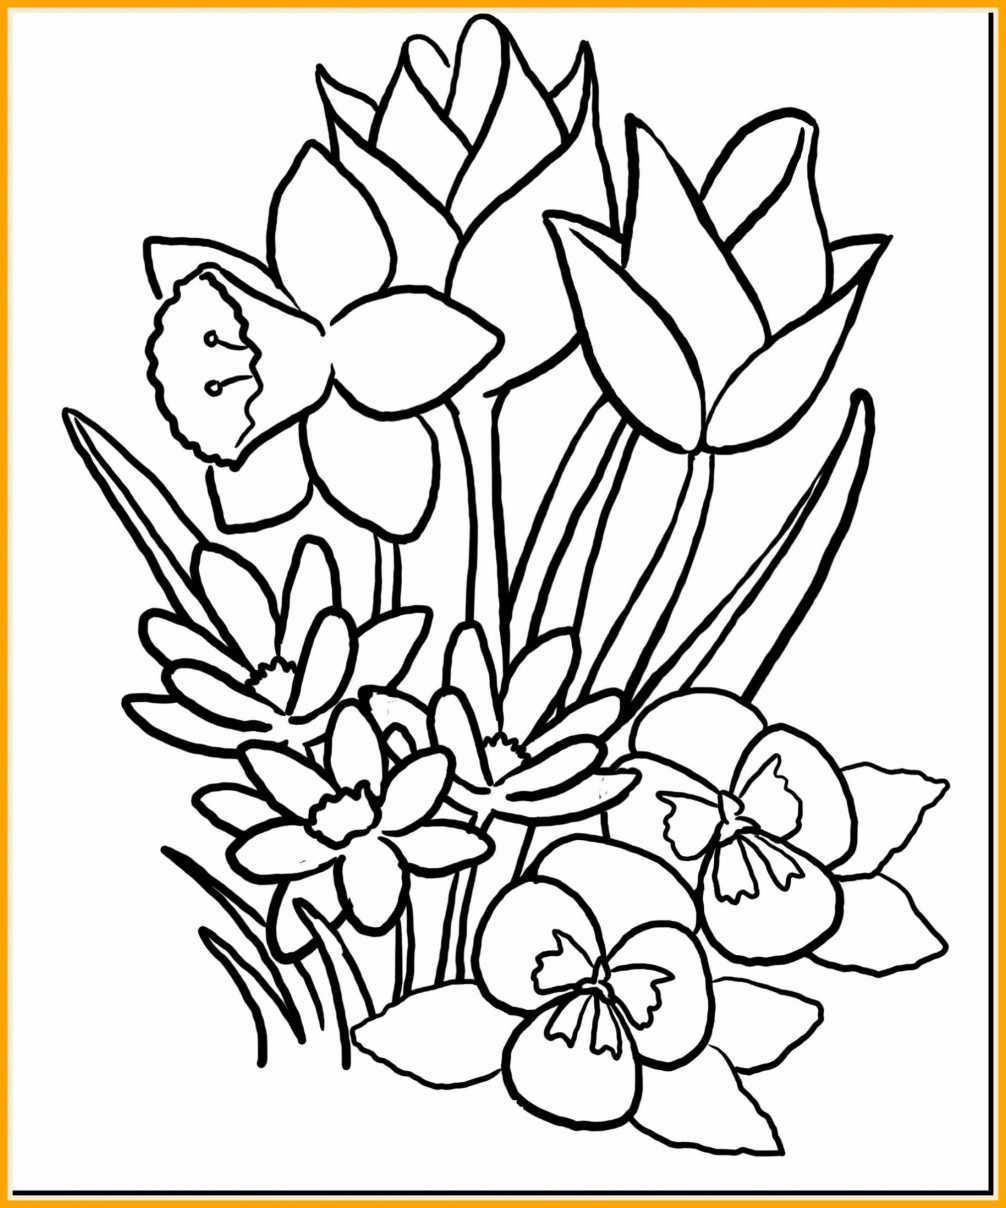 1006x1208 Appealing A The Bee On Flower Coloring Pages For Kids Pic